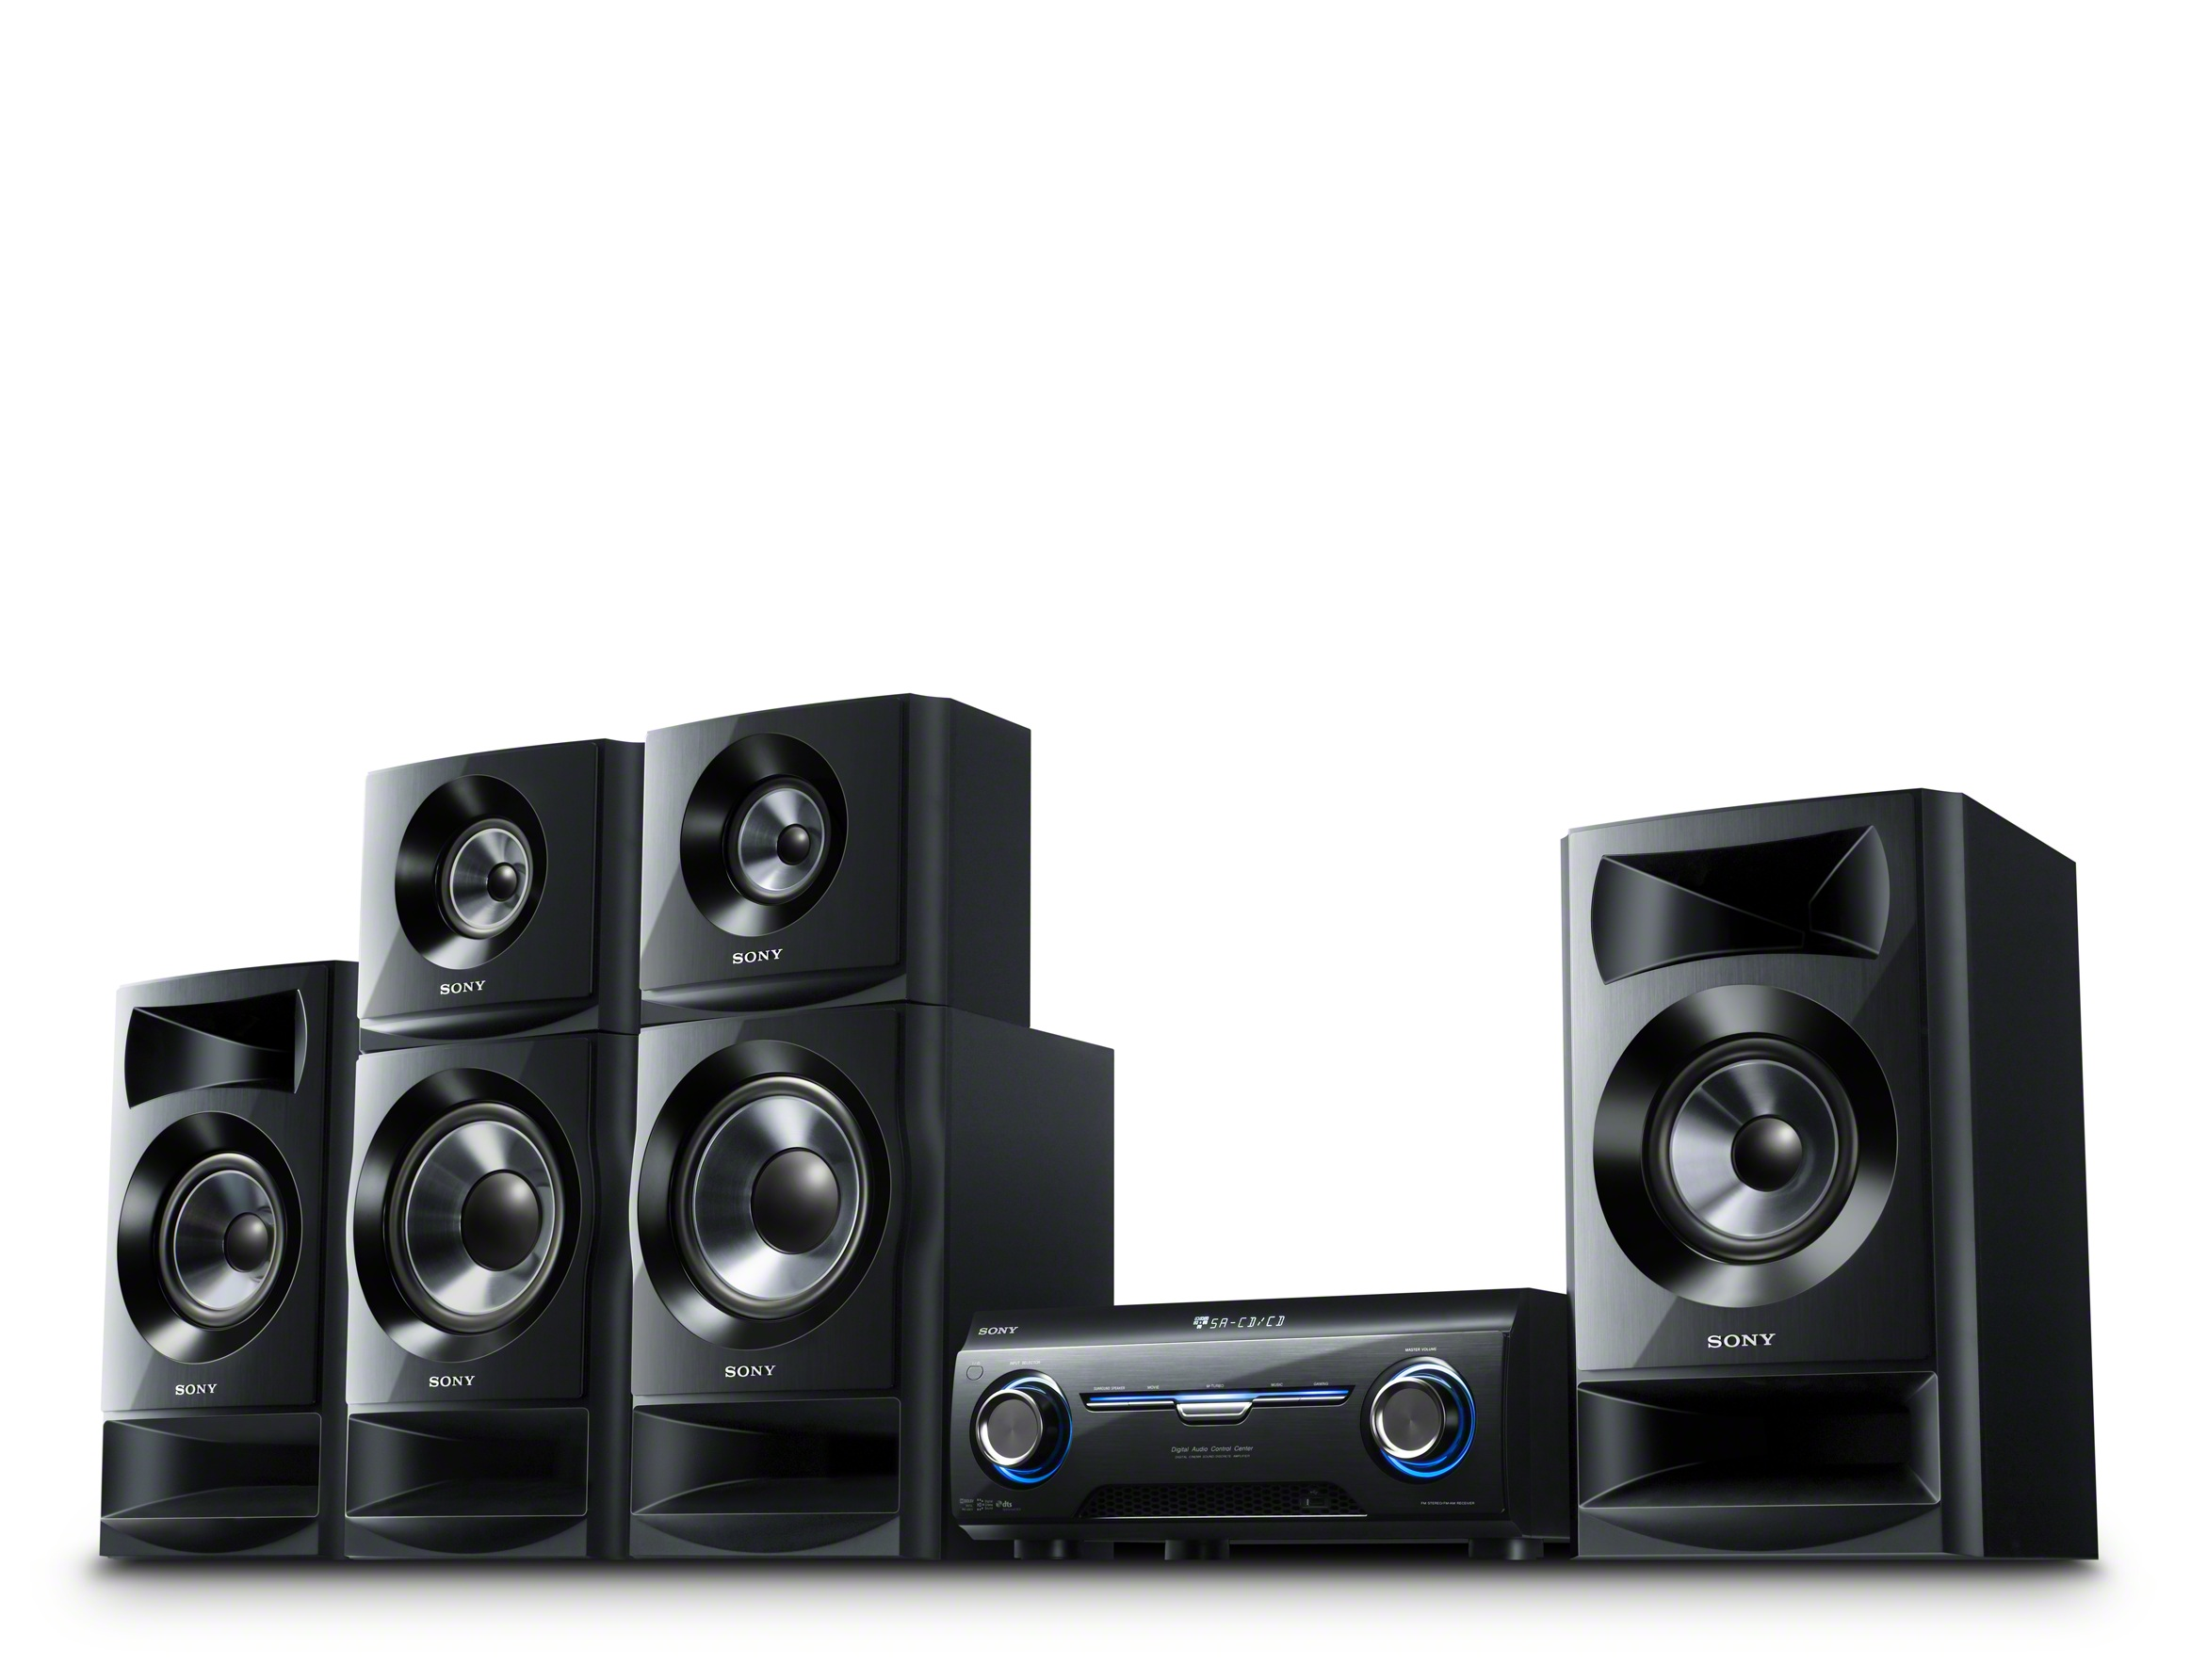 Sony Sony Home Audio System 2012